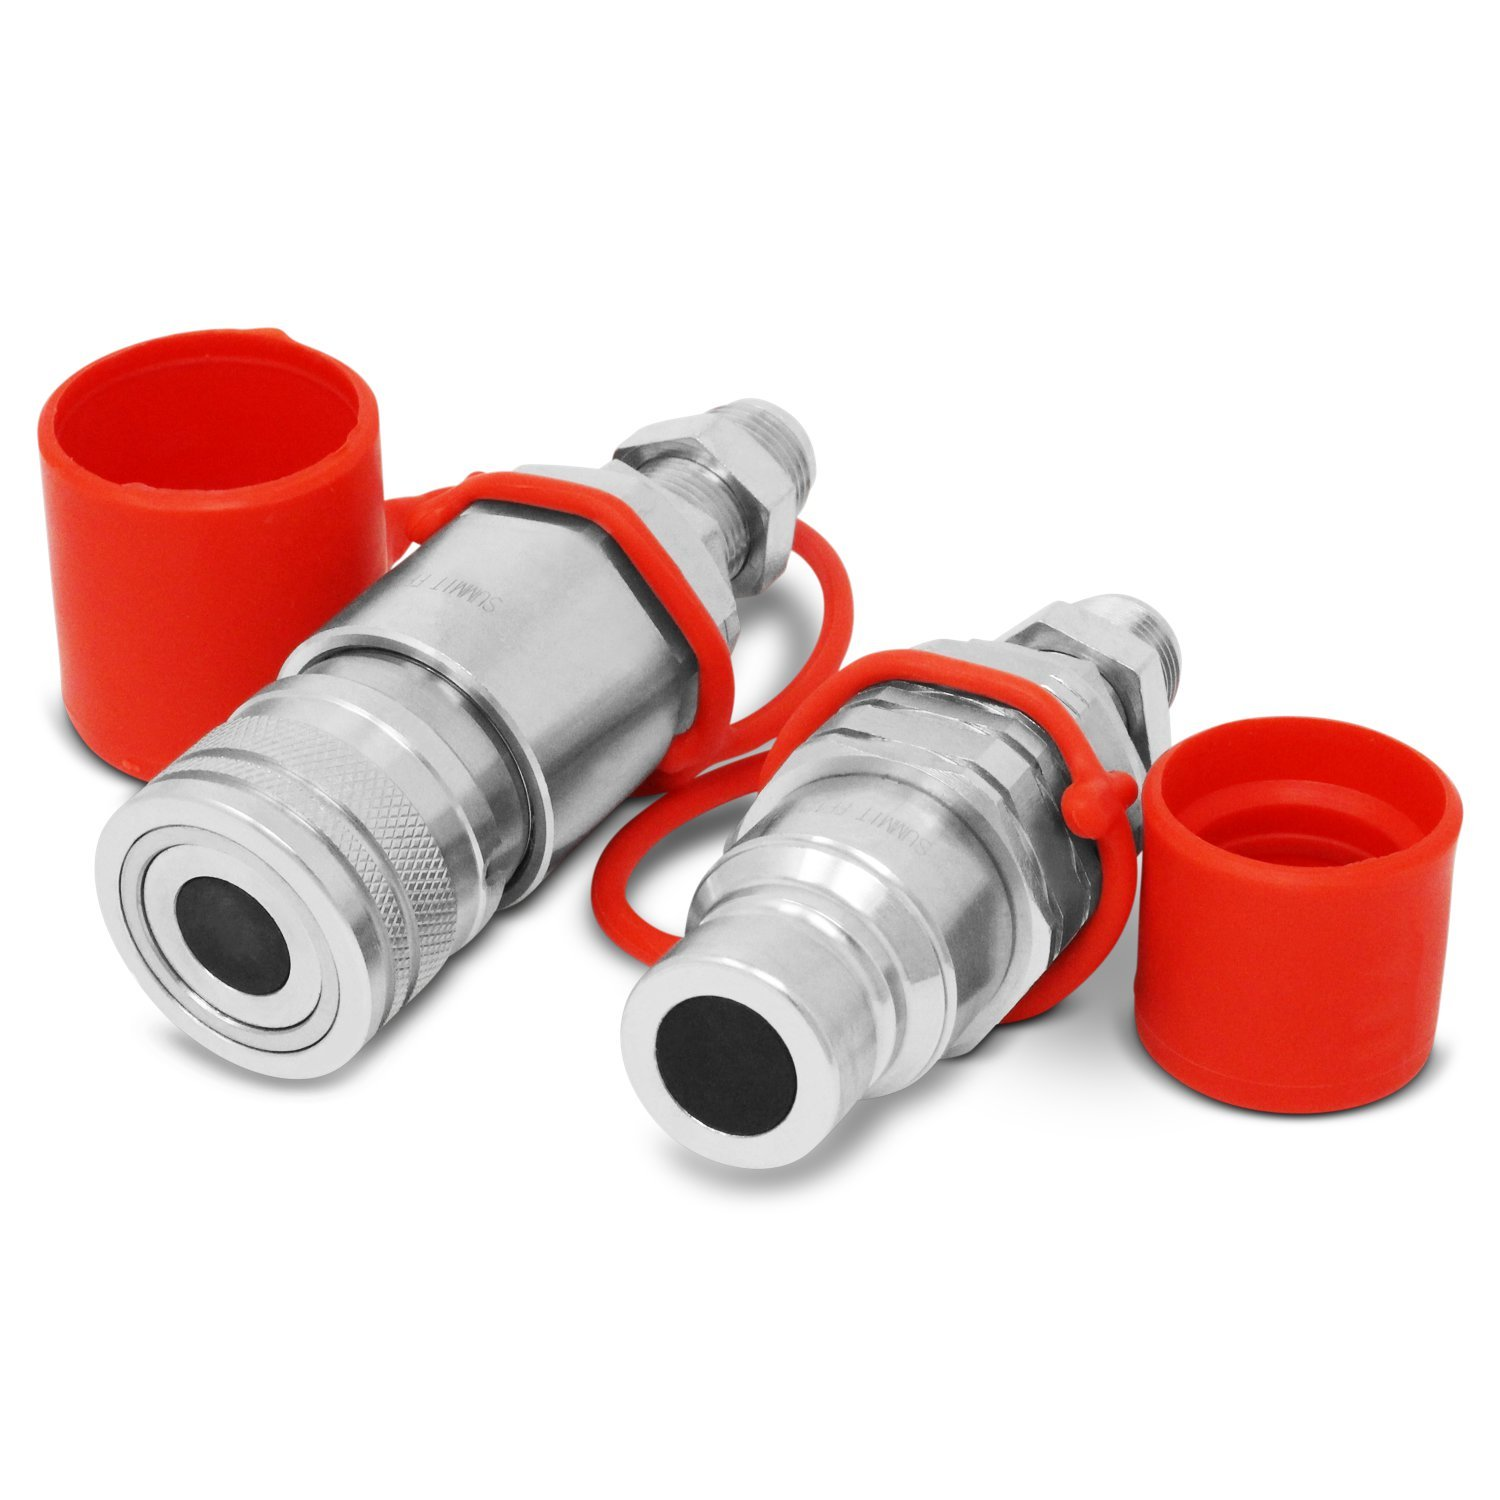 Flat Face Hydraulic Quick Connect Coupler, 8 JIC Bulkhead Skid Steer Mount